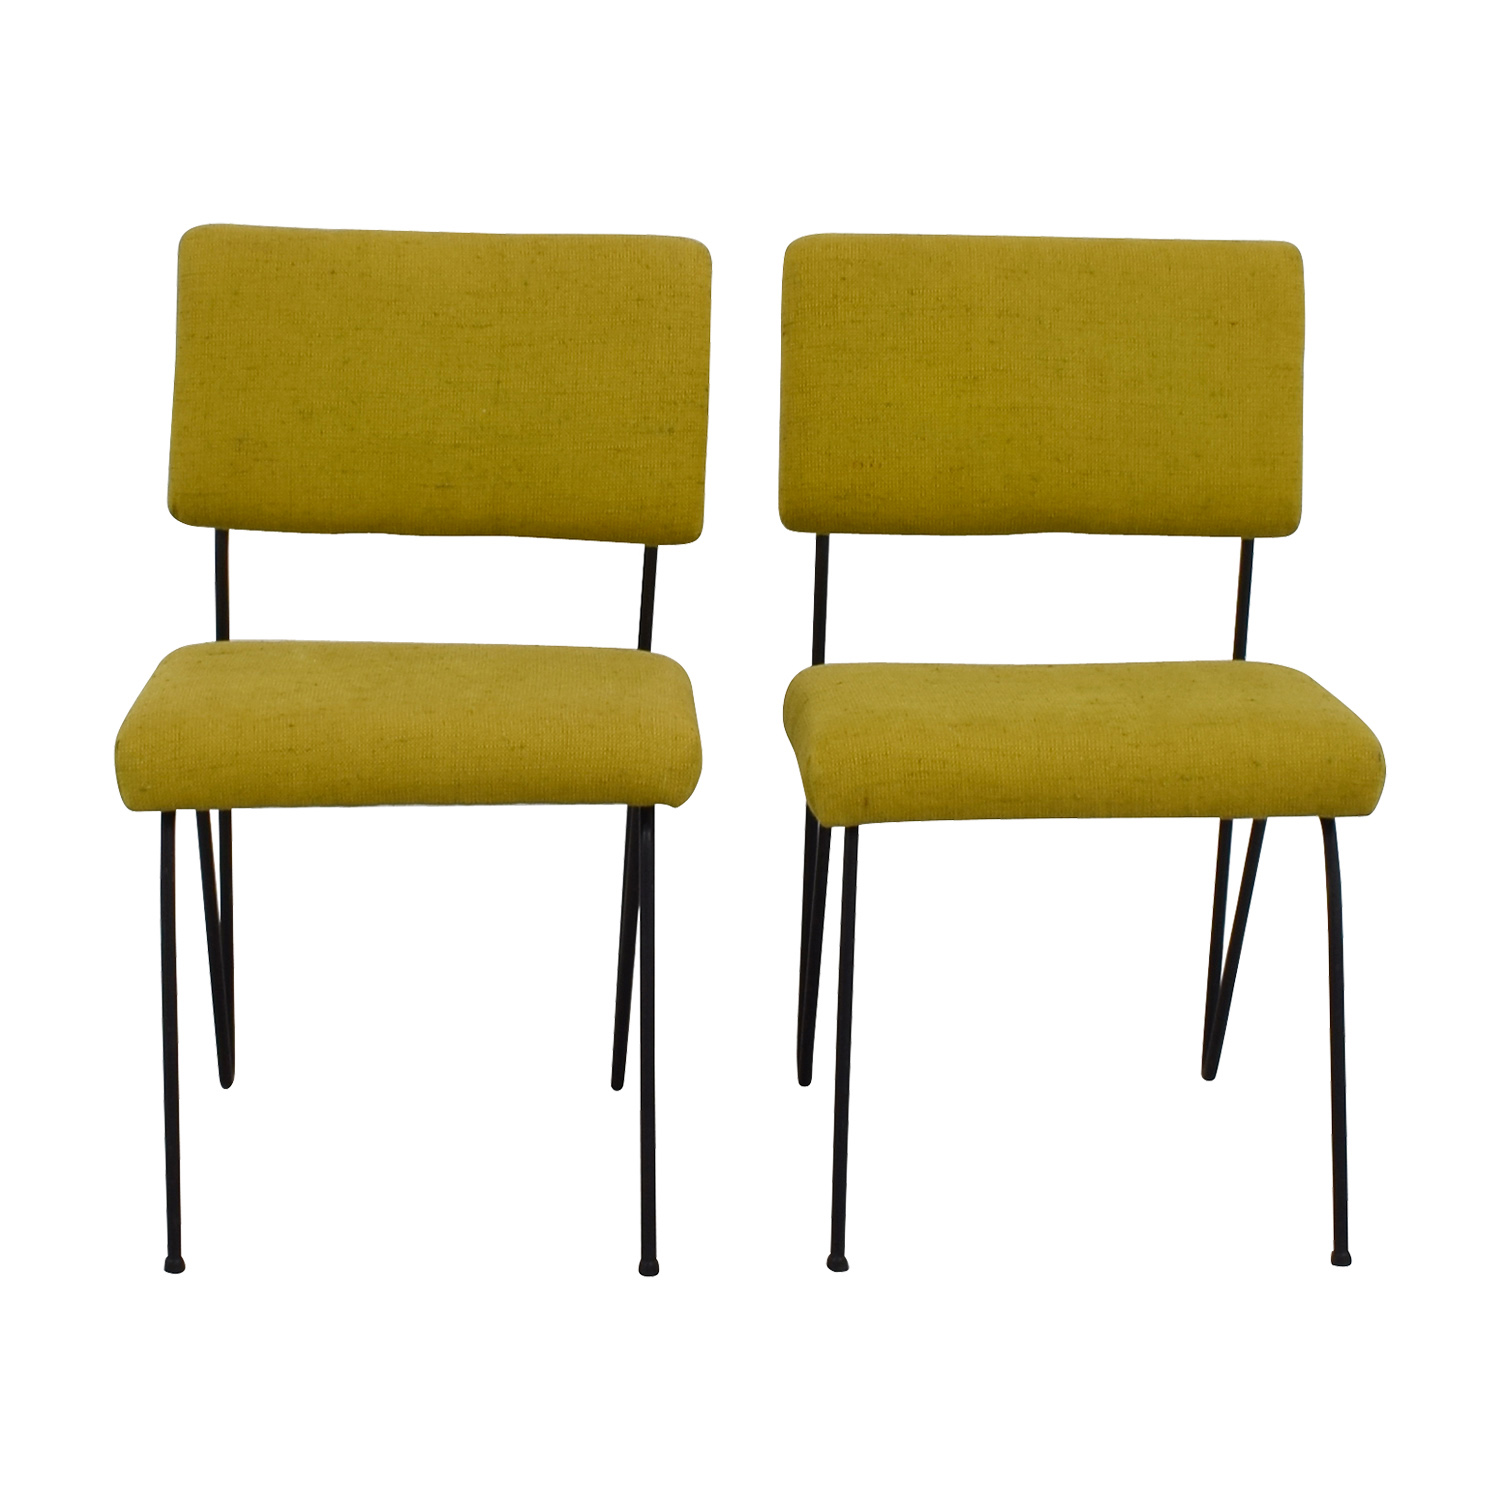 Furniture Masters Green Fabric and Metal Chairs sale